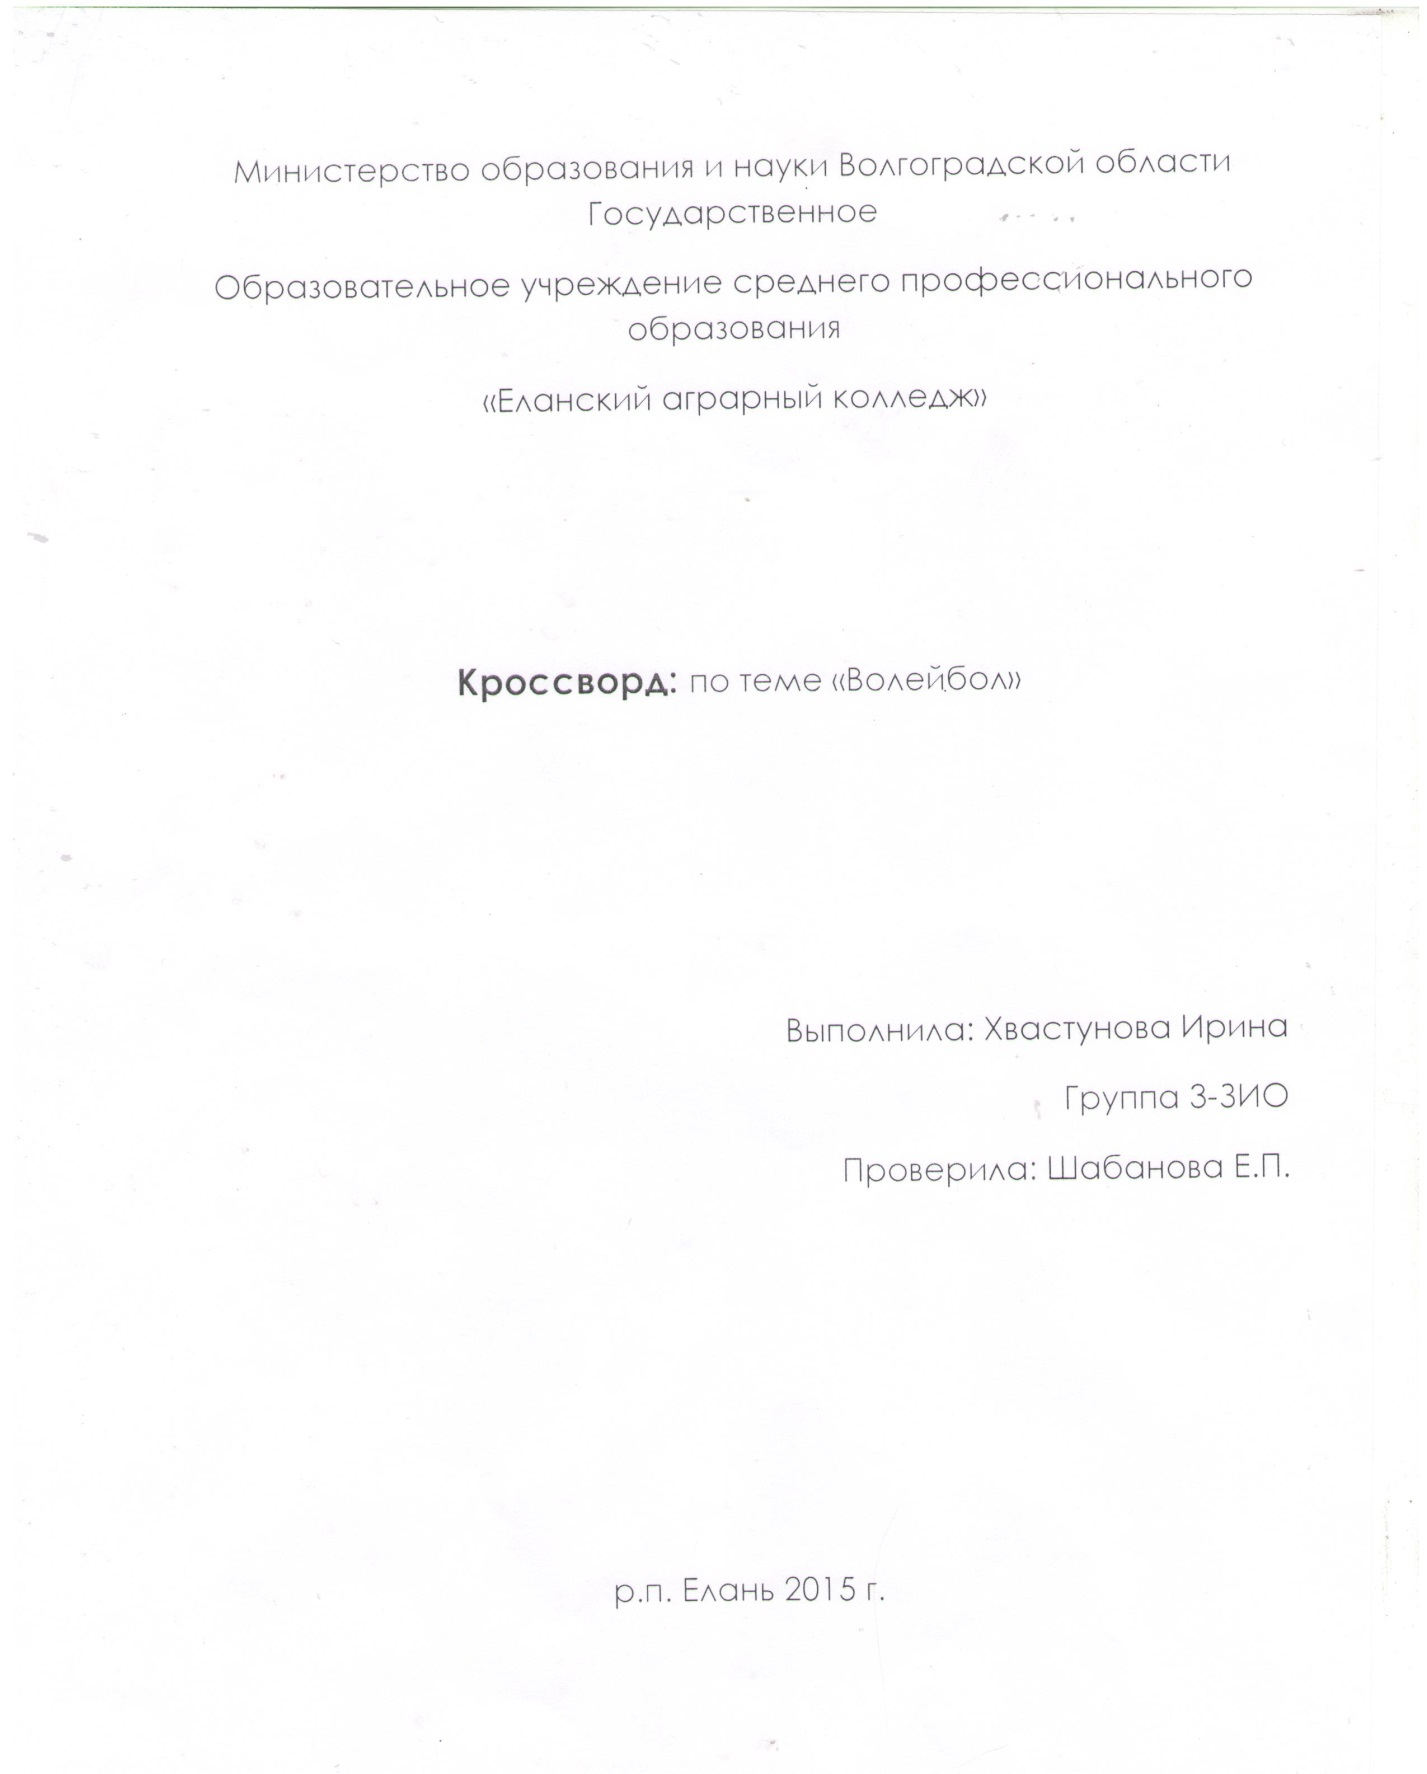 C:\Users\леночка\Documents\Scanned Documents\Кроссворд 1 стр..jpg